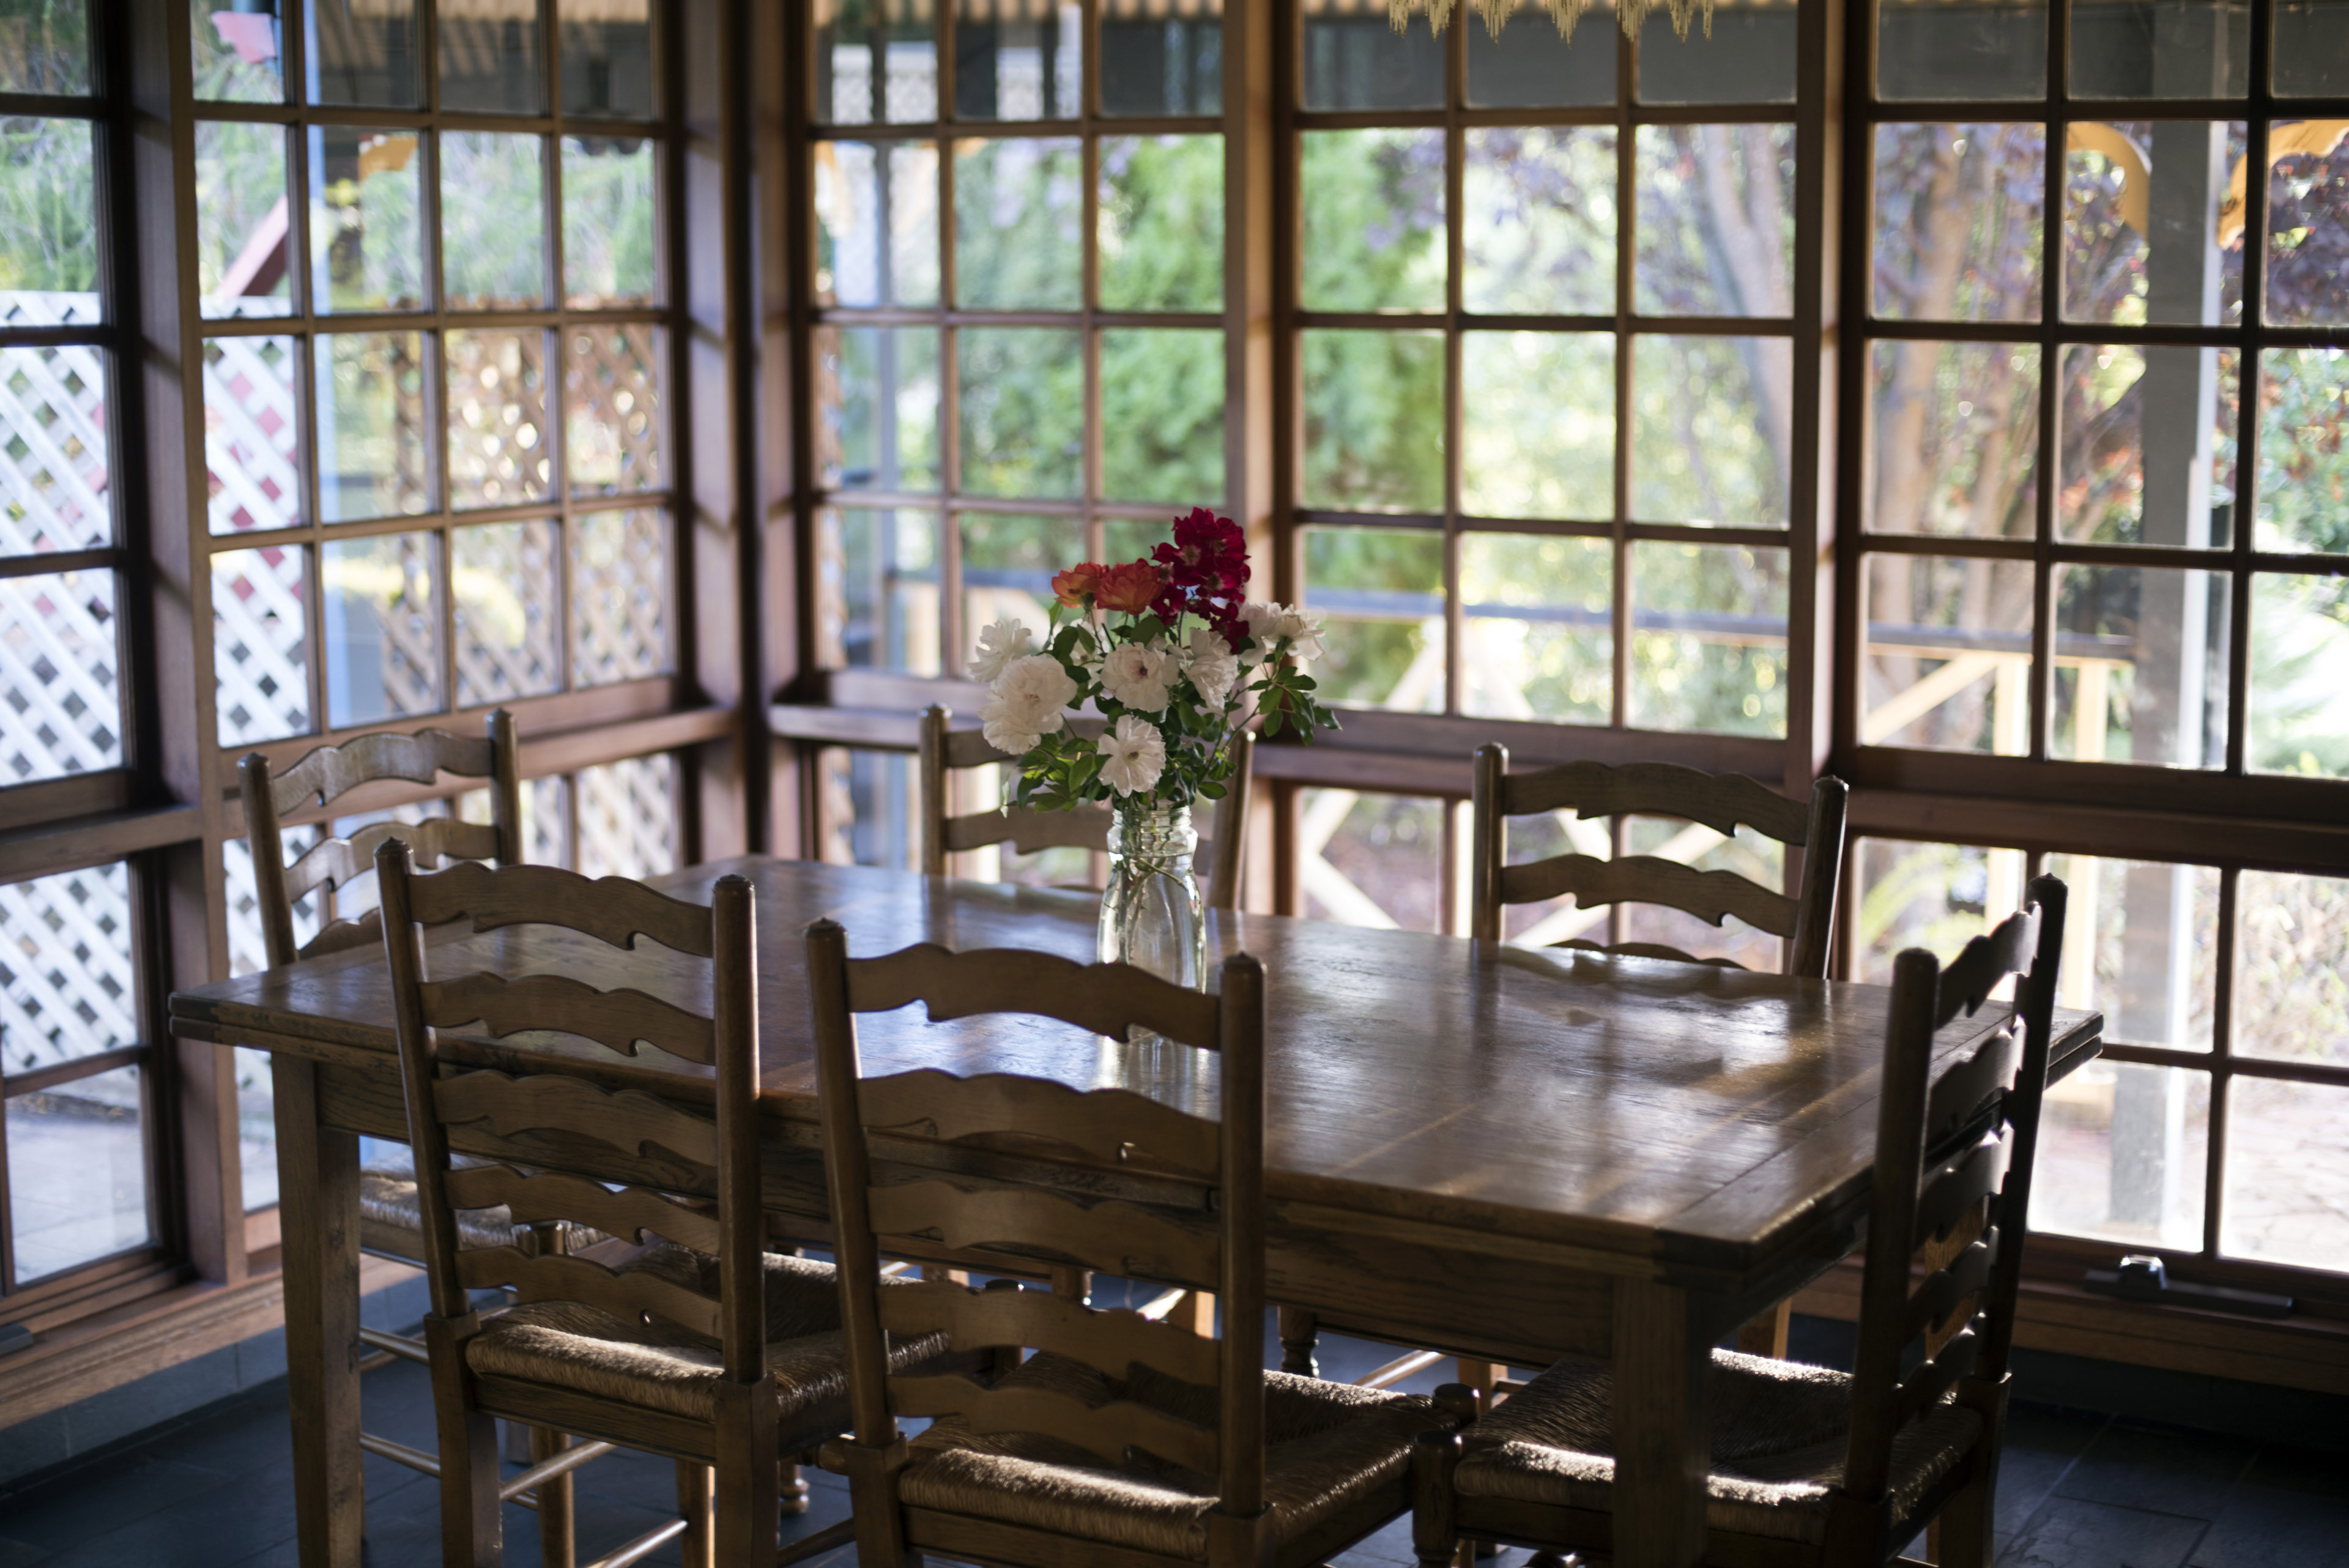 An empty, vintage timber dining room with wide windows, table and a vase of fresh flowers.